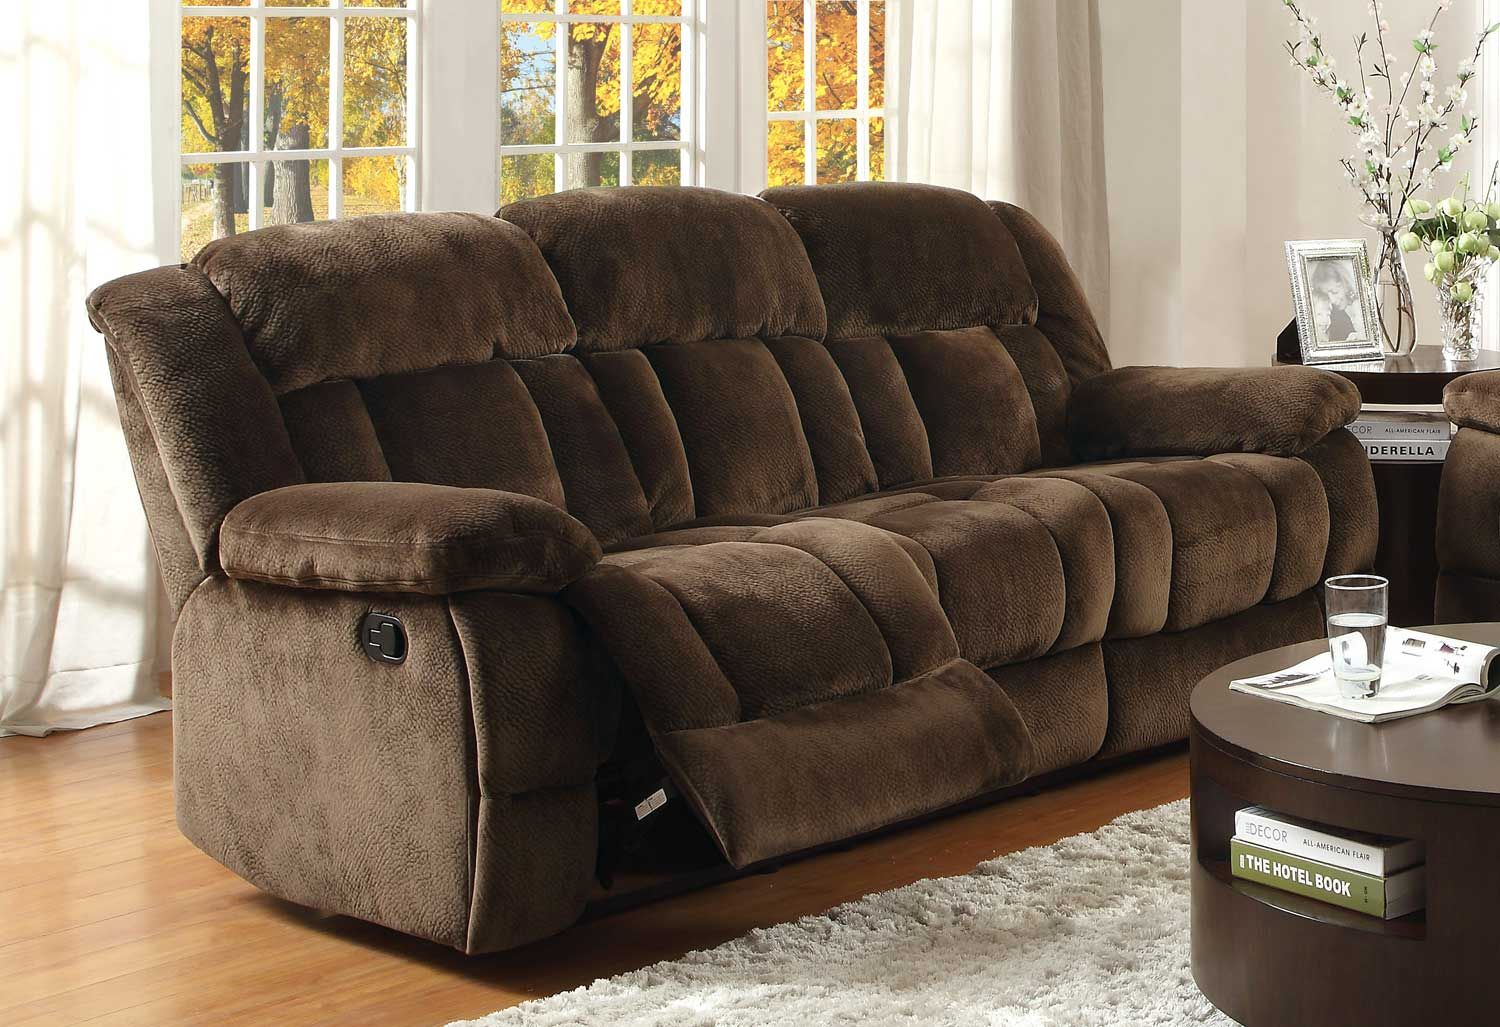 Best Homelegance Laurelton Double Reclining Sofa Chocolate 640 x 480